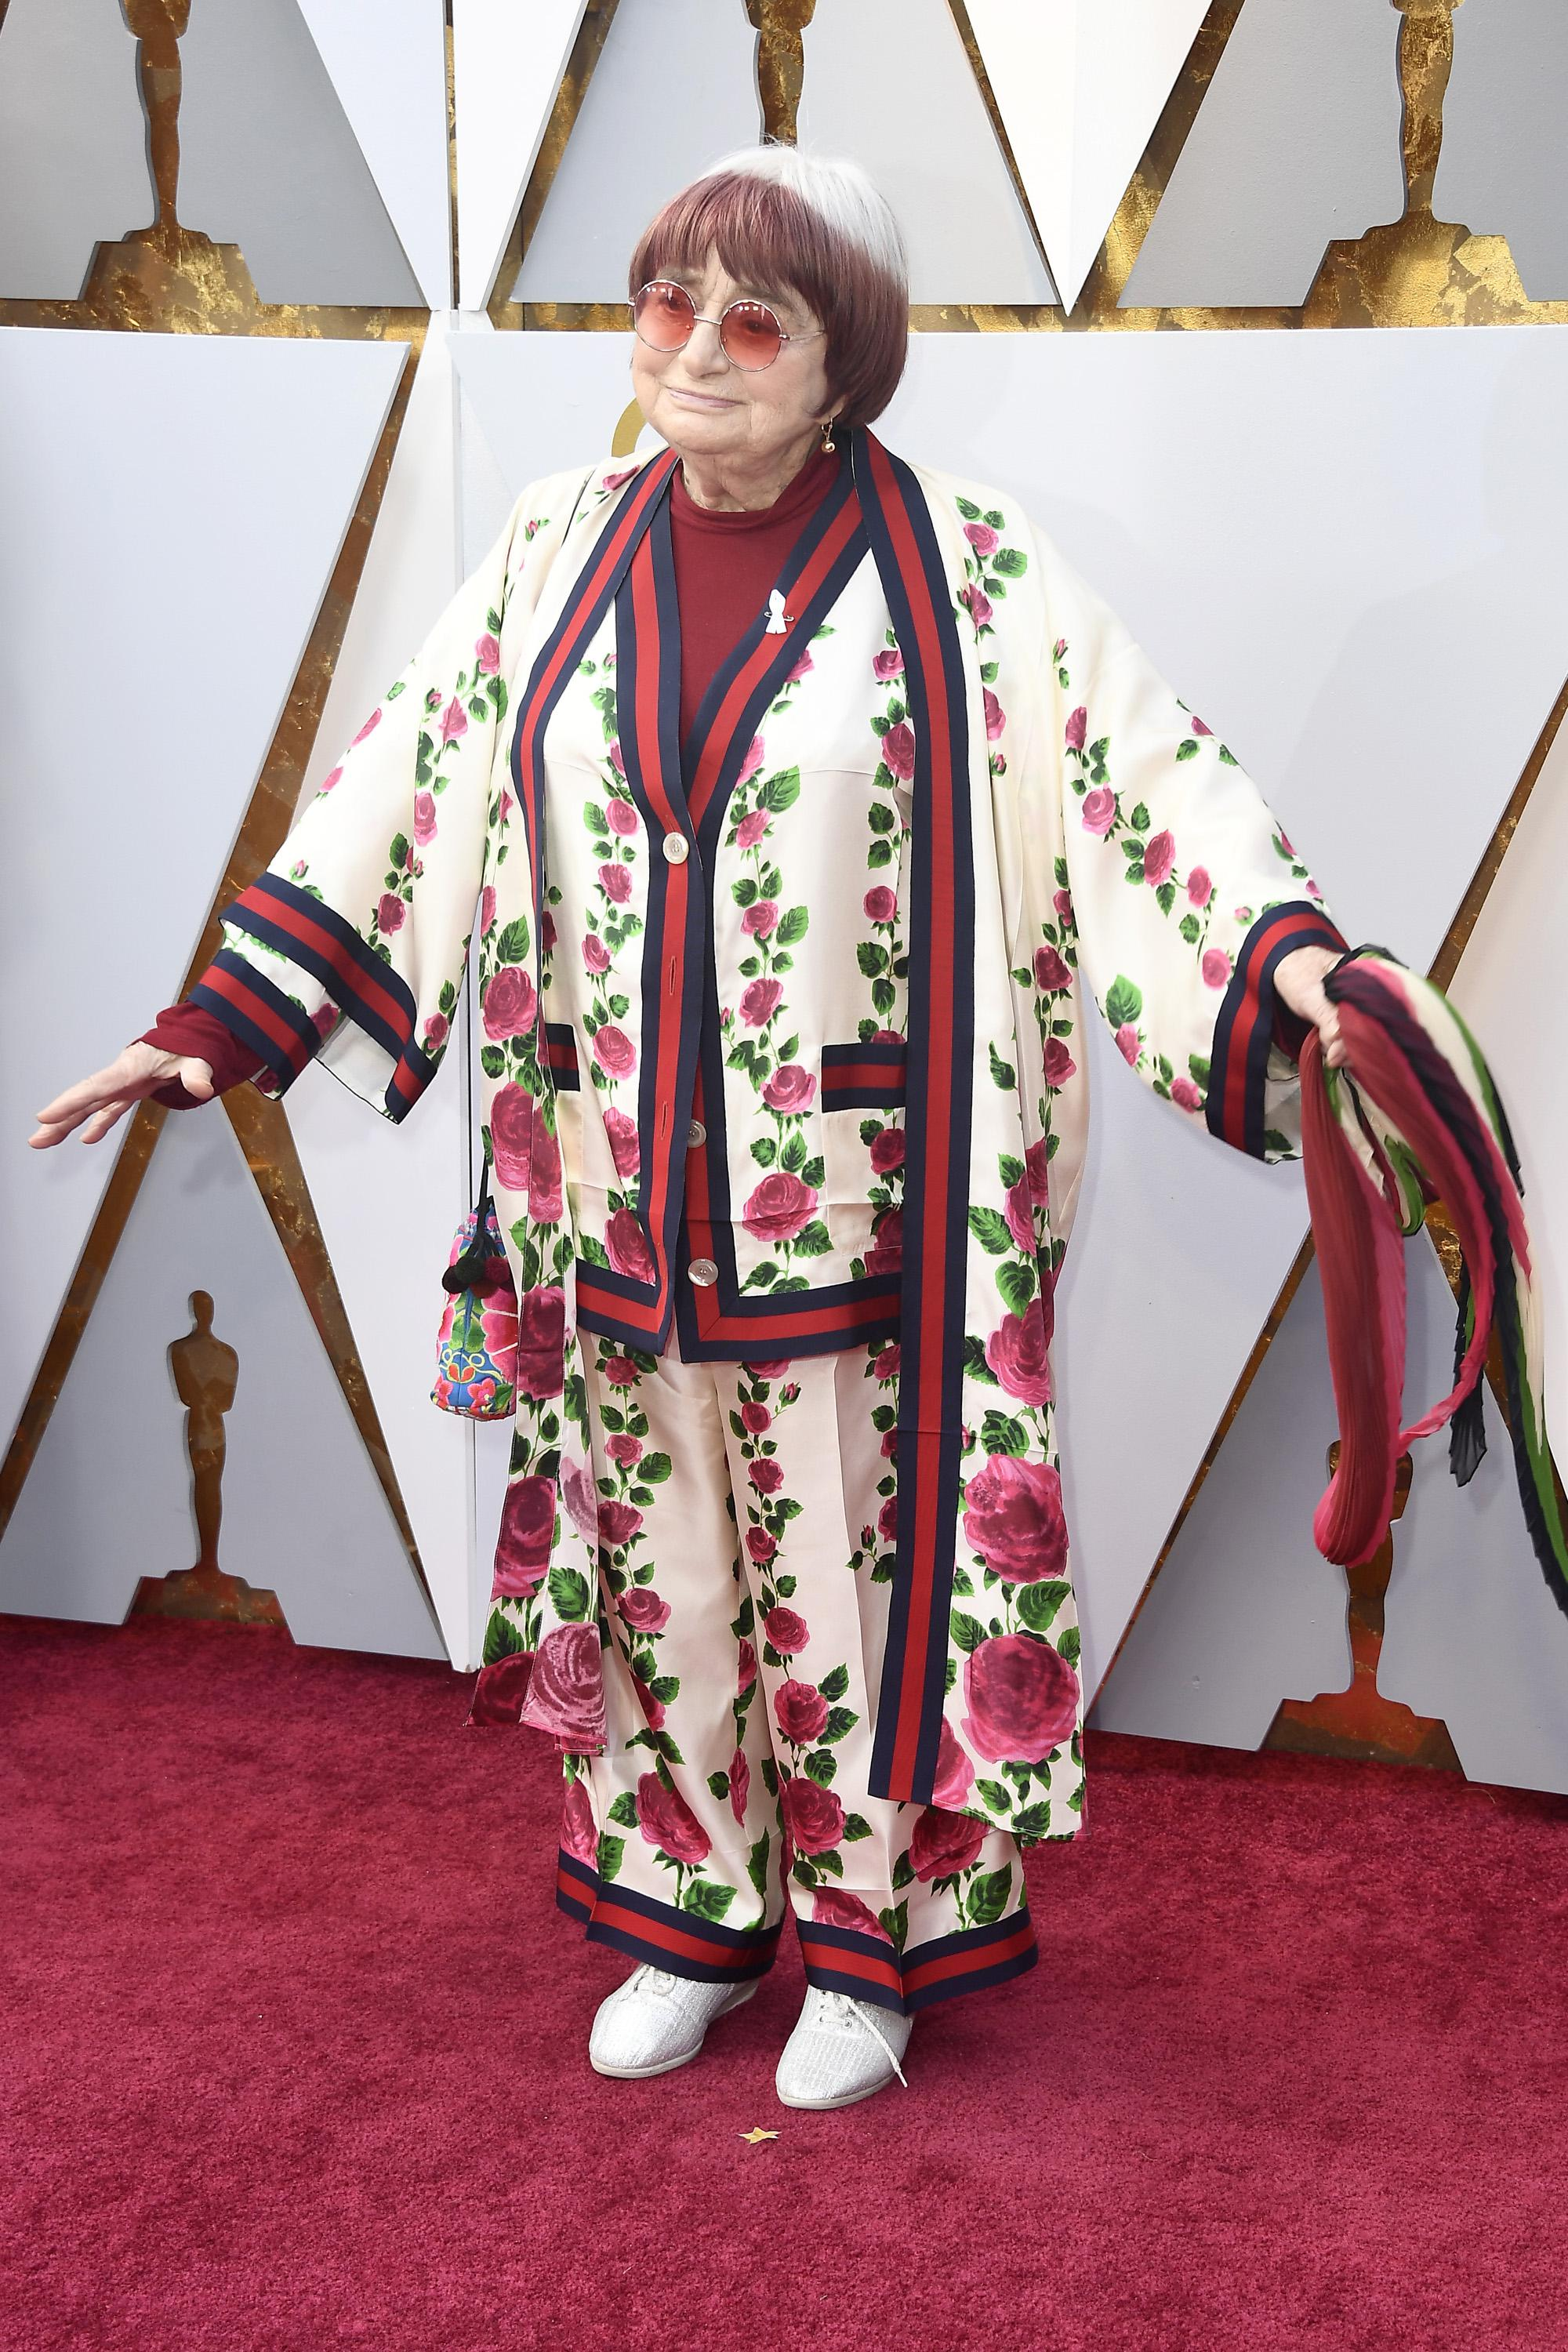 Agnes Varda attends the 90th Annual Academy Awards at Hollywood & Highland Center on March 4, 2018 in Hollywood, California.  (Photo by Frazer Harrison/Getty Images)